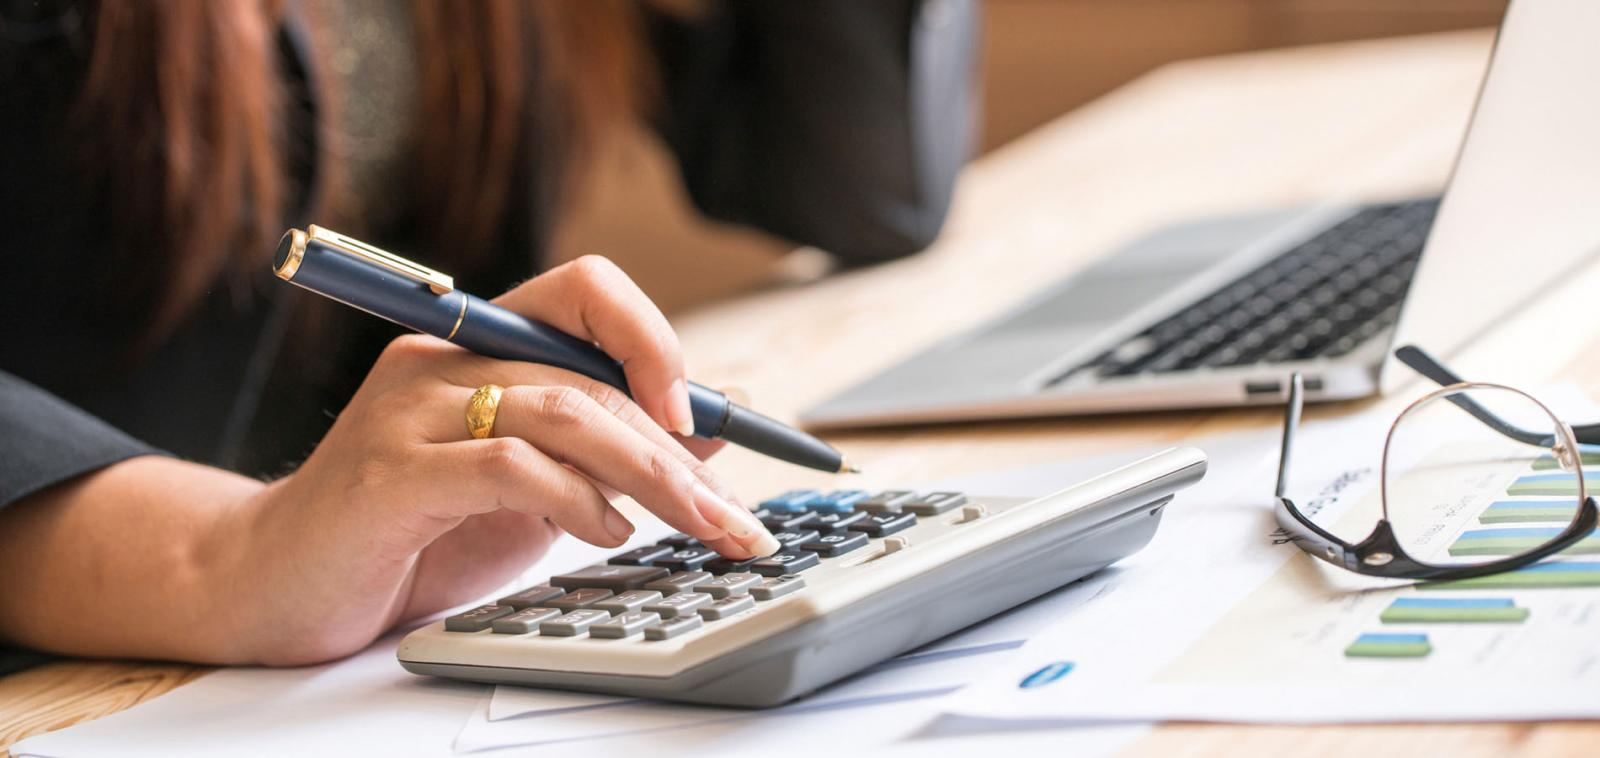 Outstanding Outlet for Quality Accounting and Legal Services